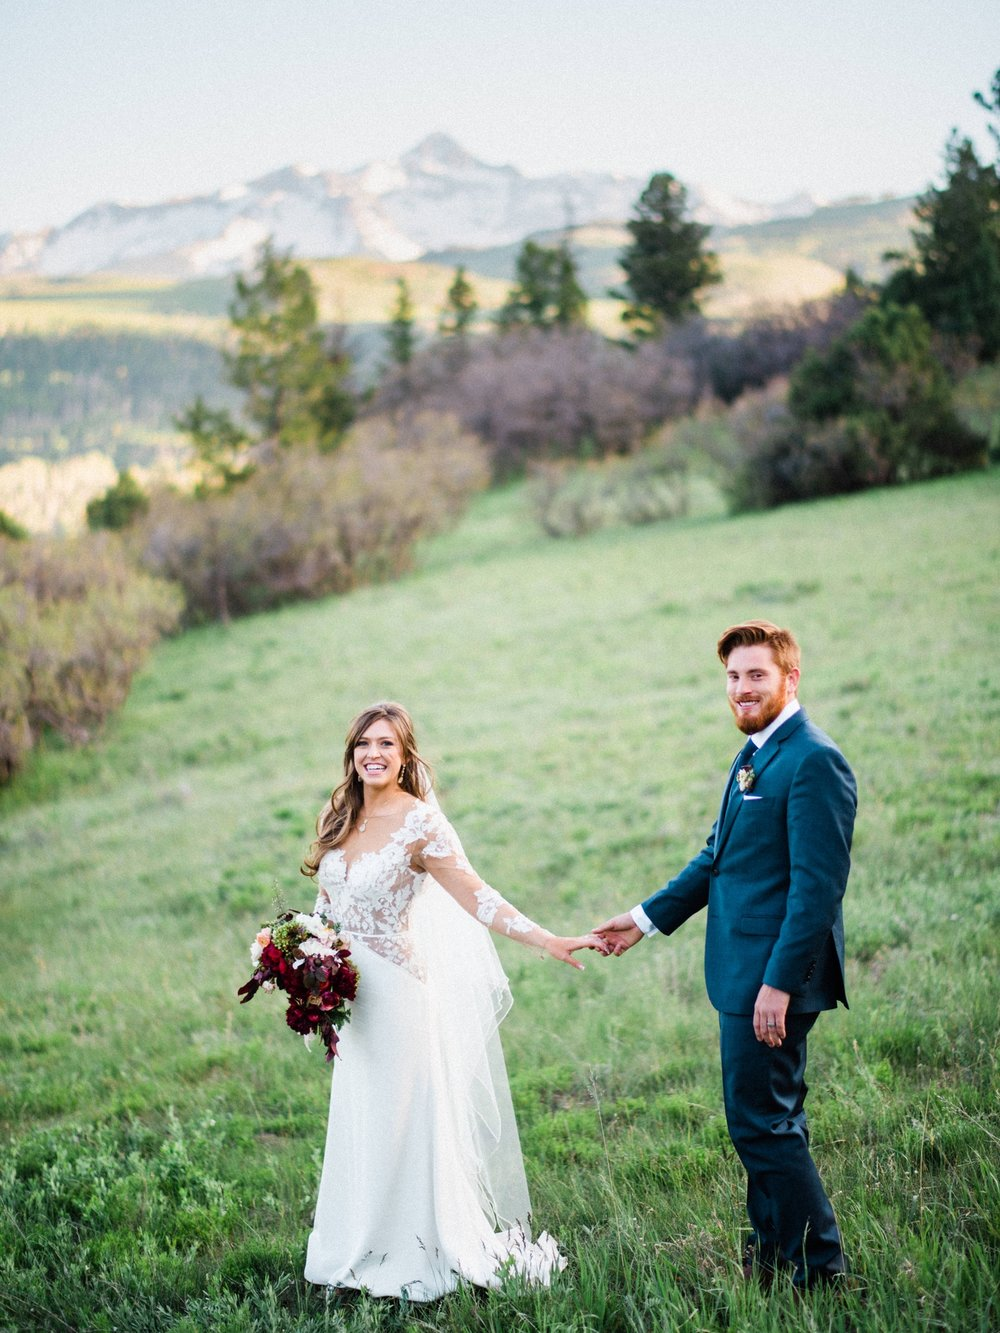 Outdoor Telluride Wedding Bride and Groom in grassy field